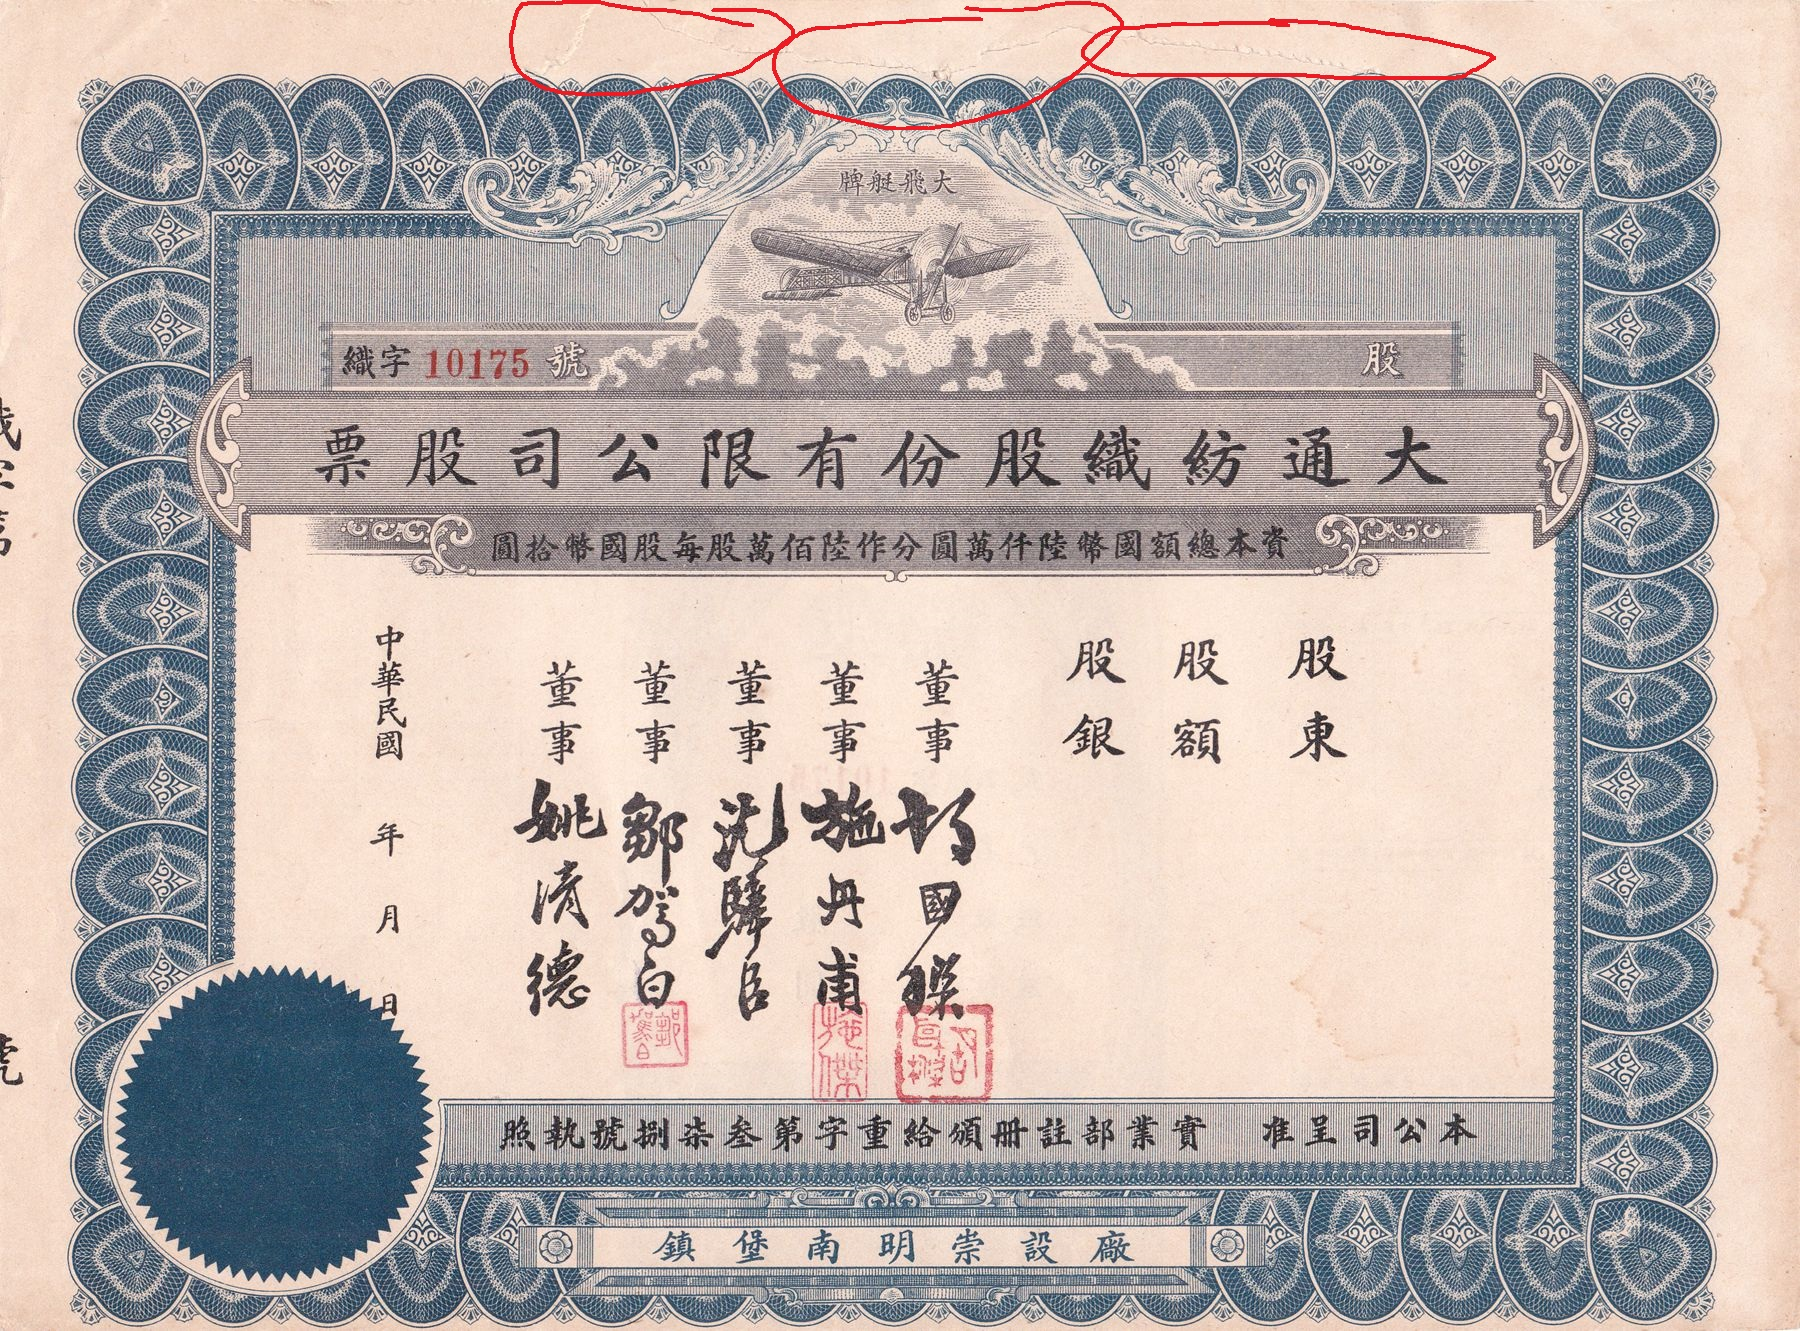 S1074, Dah Tung Cotton MFG. Co., Stock Certificate Unused, Shanghai 1948